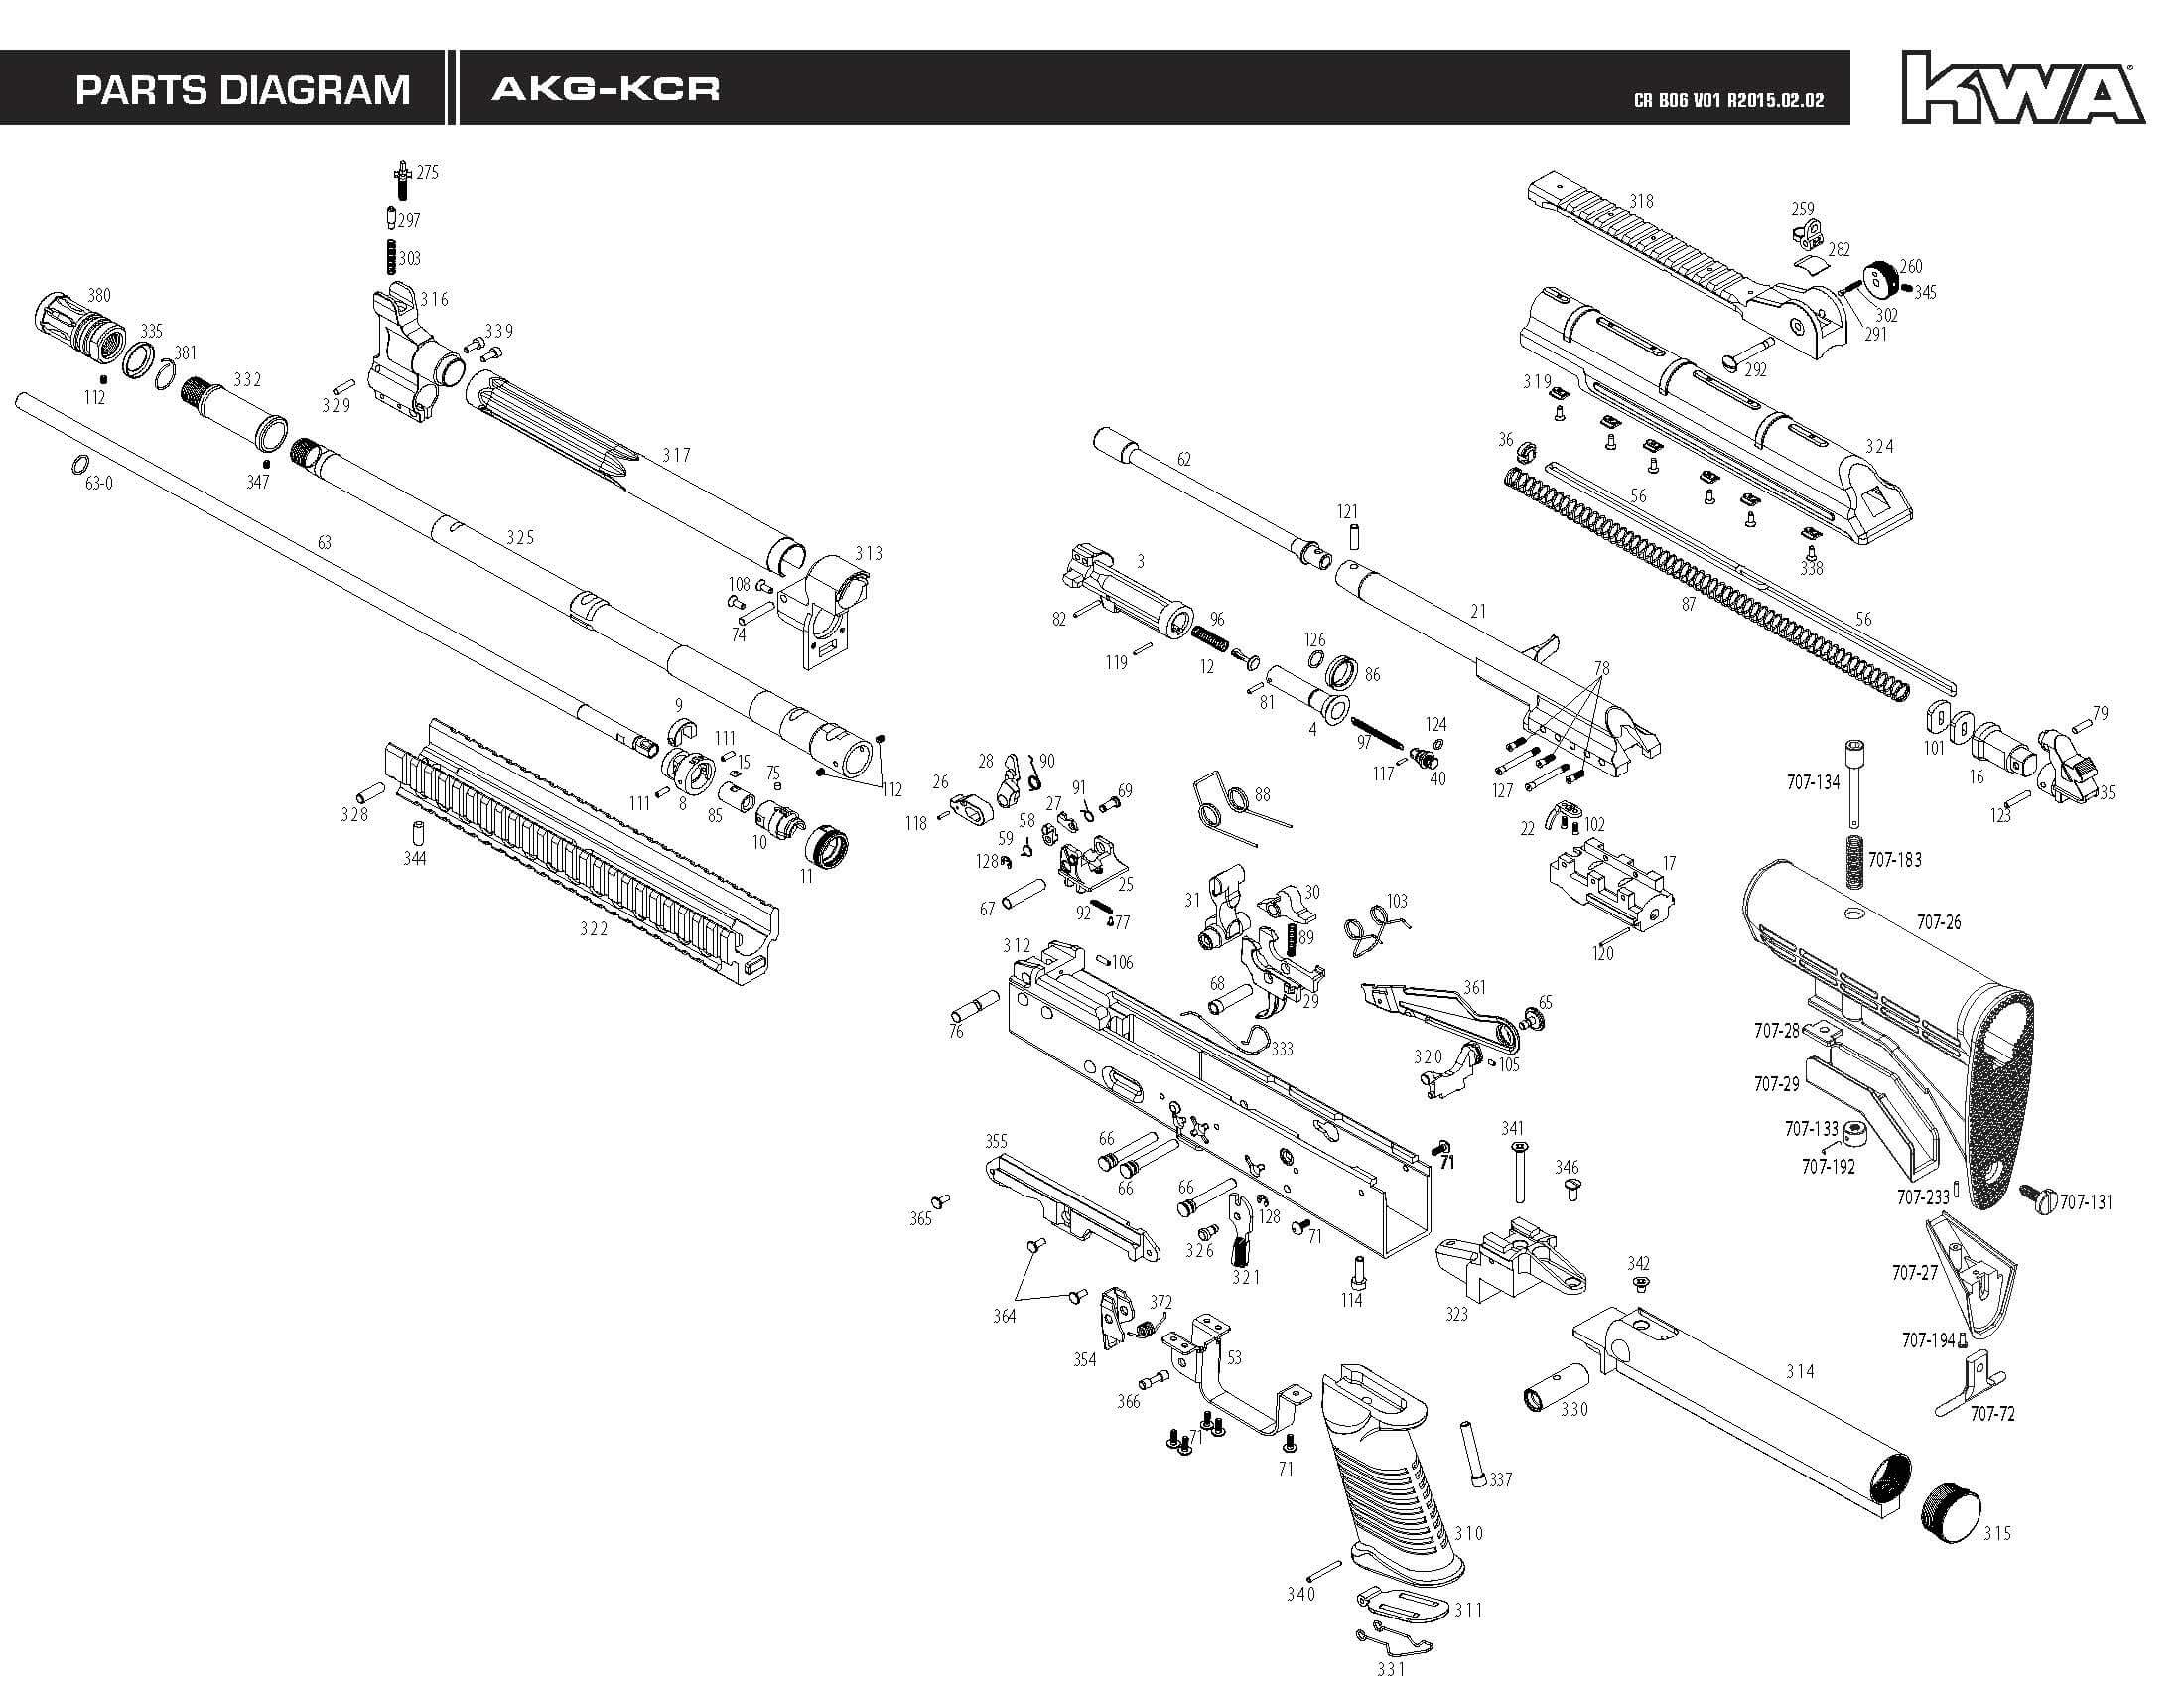 Downloads Kwa Airsoft 22 Rifle Parts Diagram Engine Car And Component Gbbr Lm4 Akg Series